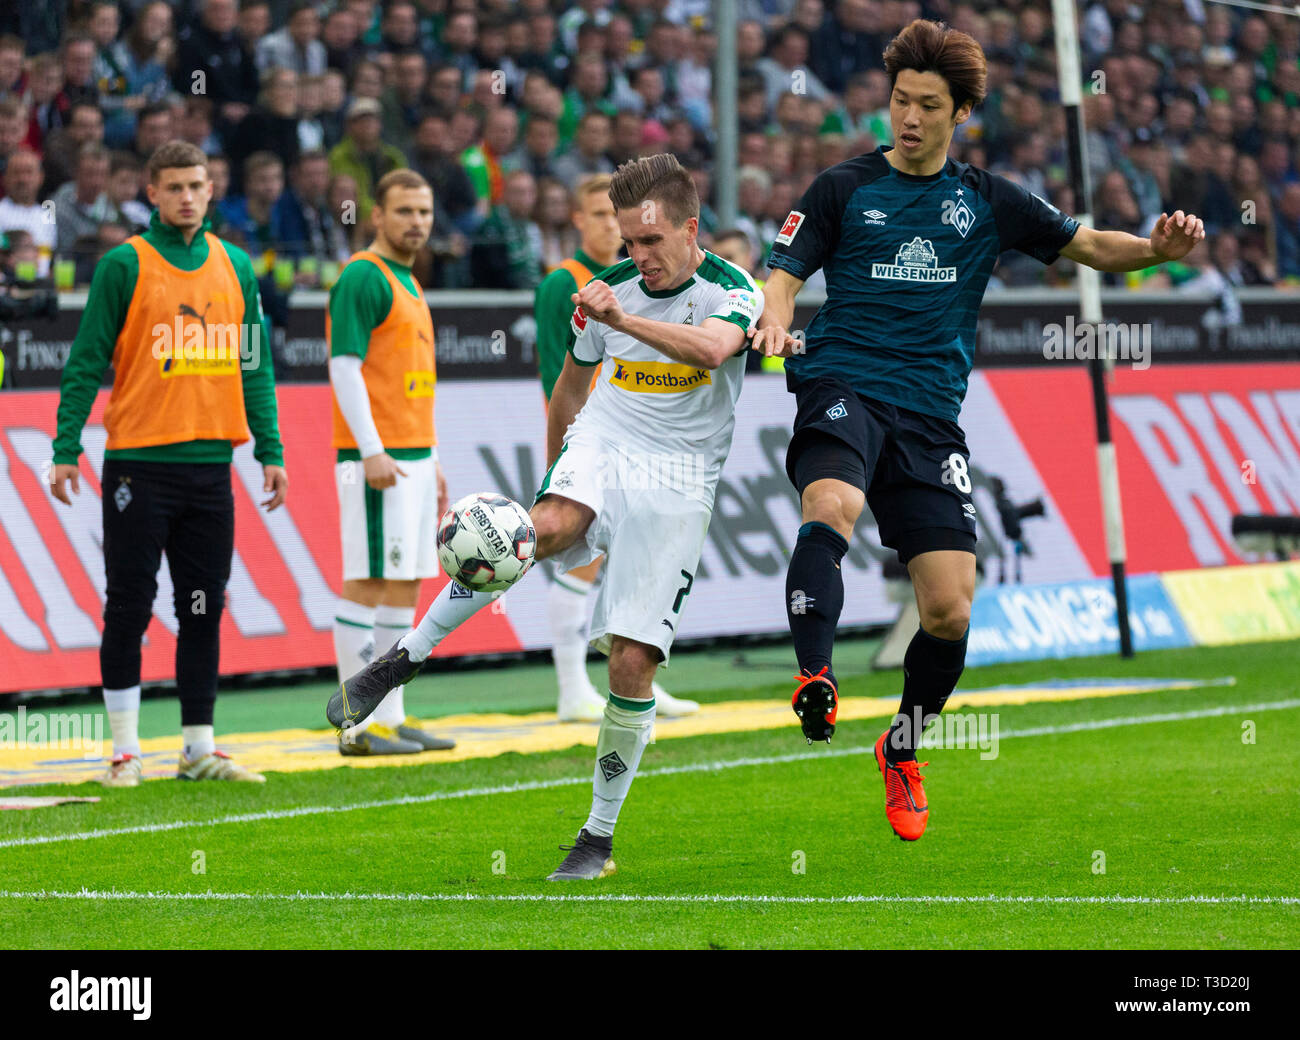 sports, football, Bundesliga, 2018/2019, Borussia Moenchengladbach vs SV Werder Bremen 1-1, Stadium Borussia Park, scene of the match, Patrick Herrmann (MG) left and Yuya Osako (Bremen), DFL REGULATIONS PROHIBIT ANY USE OF PHOTOGRAPHS AS IMAGE SEQUENCES AND/OR QUASI-VIDEO - Stock Image